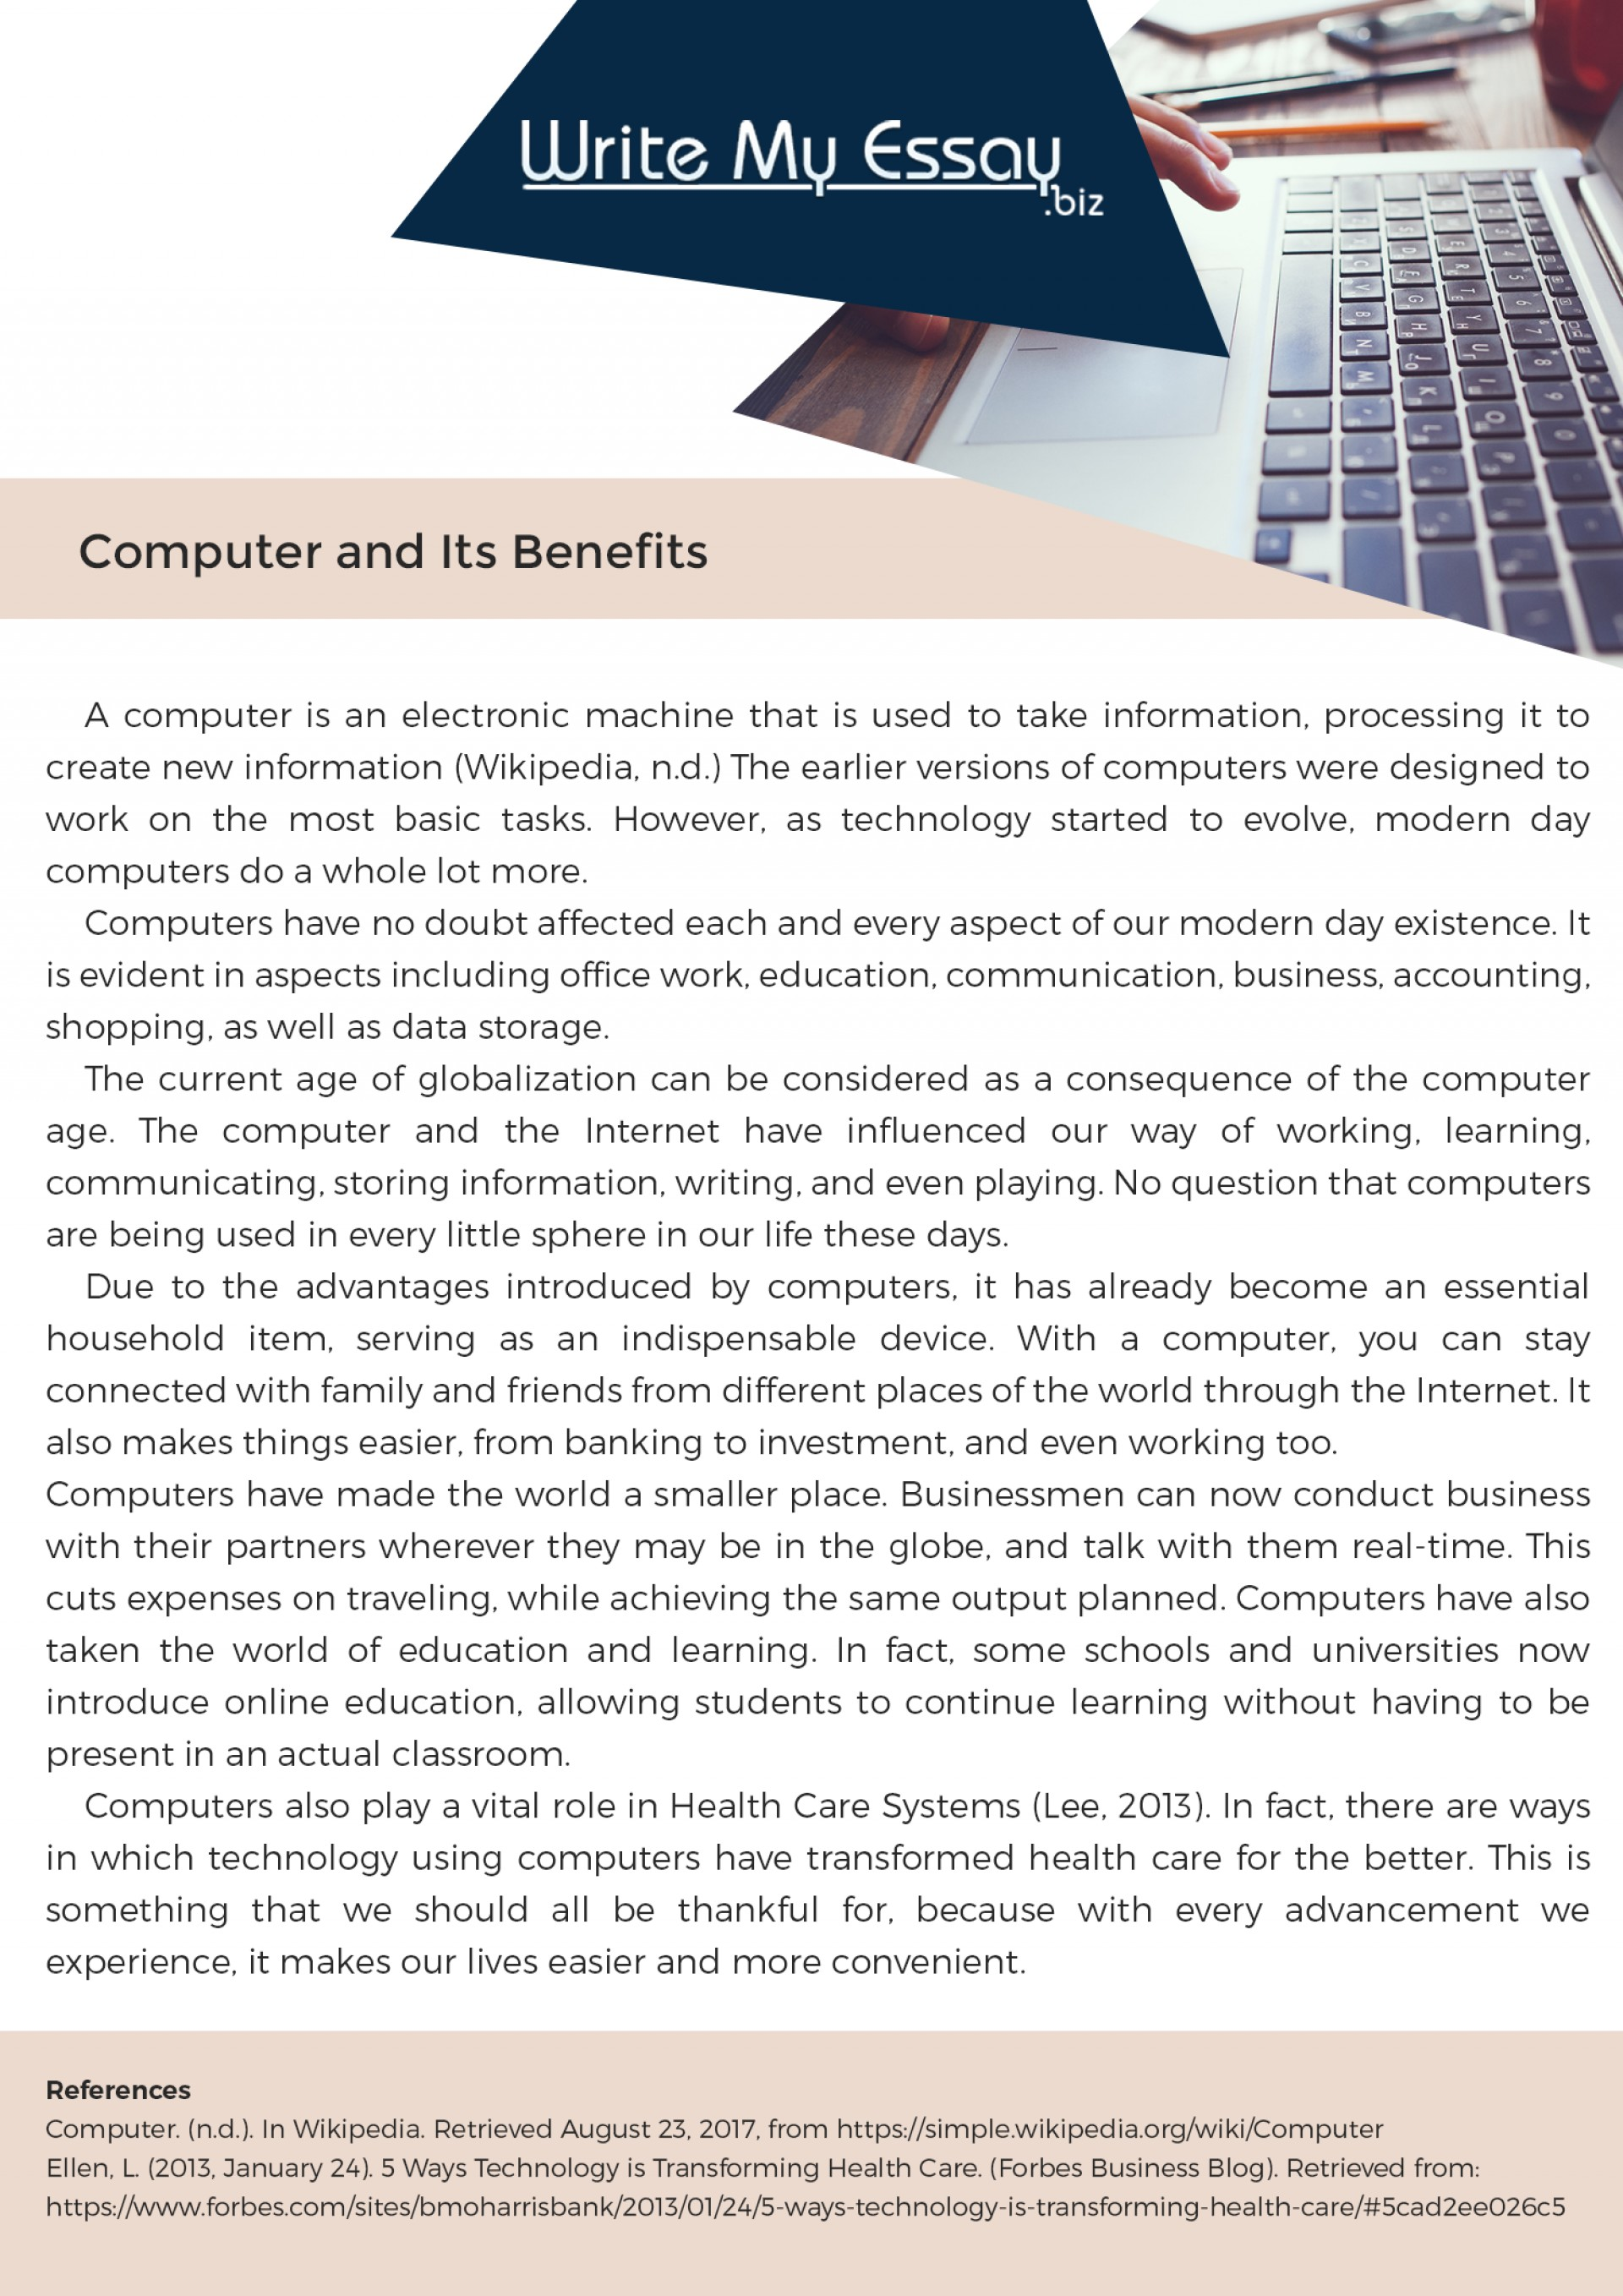 005 Essay Example On Computer And Its Benefits Fearsome Science In Hindi Urdu 1920